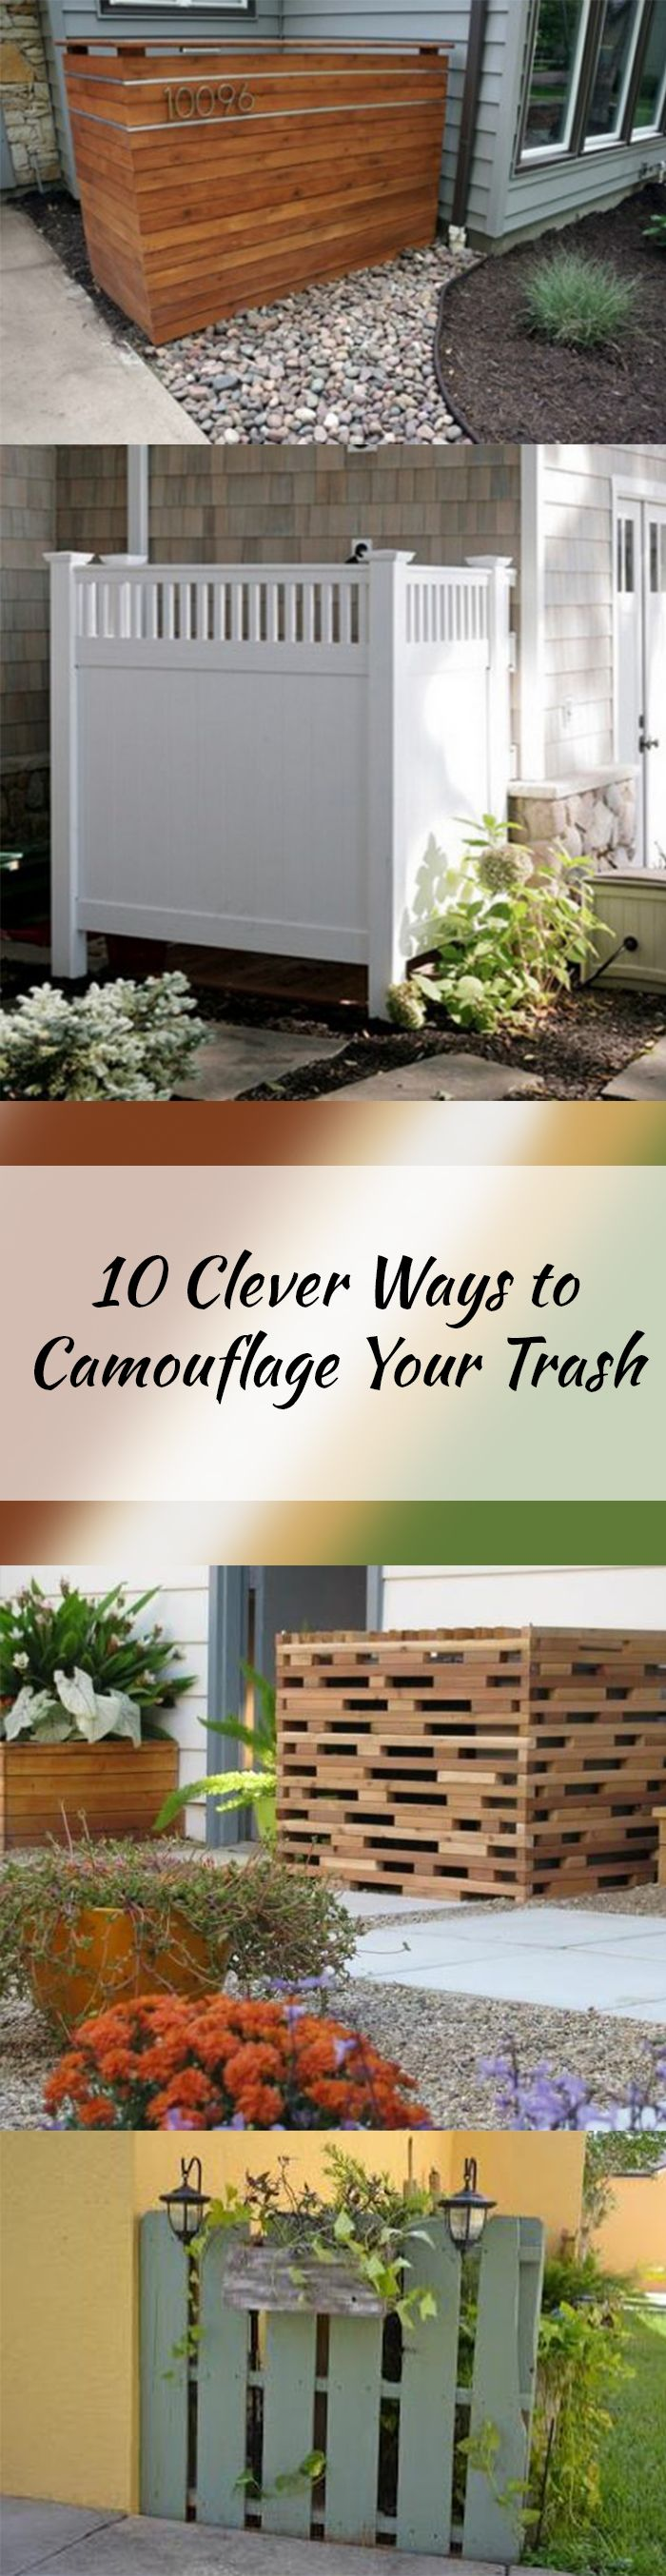 10 Clever Ways to Camouflage Rubbish Bins ...